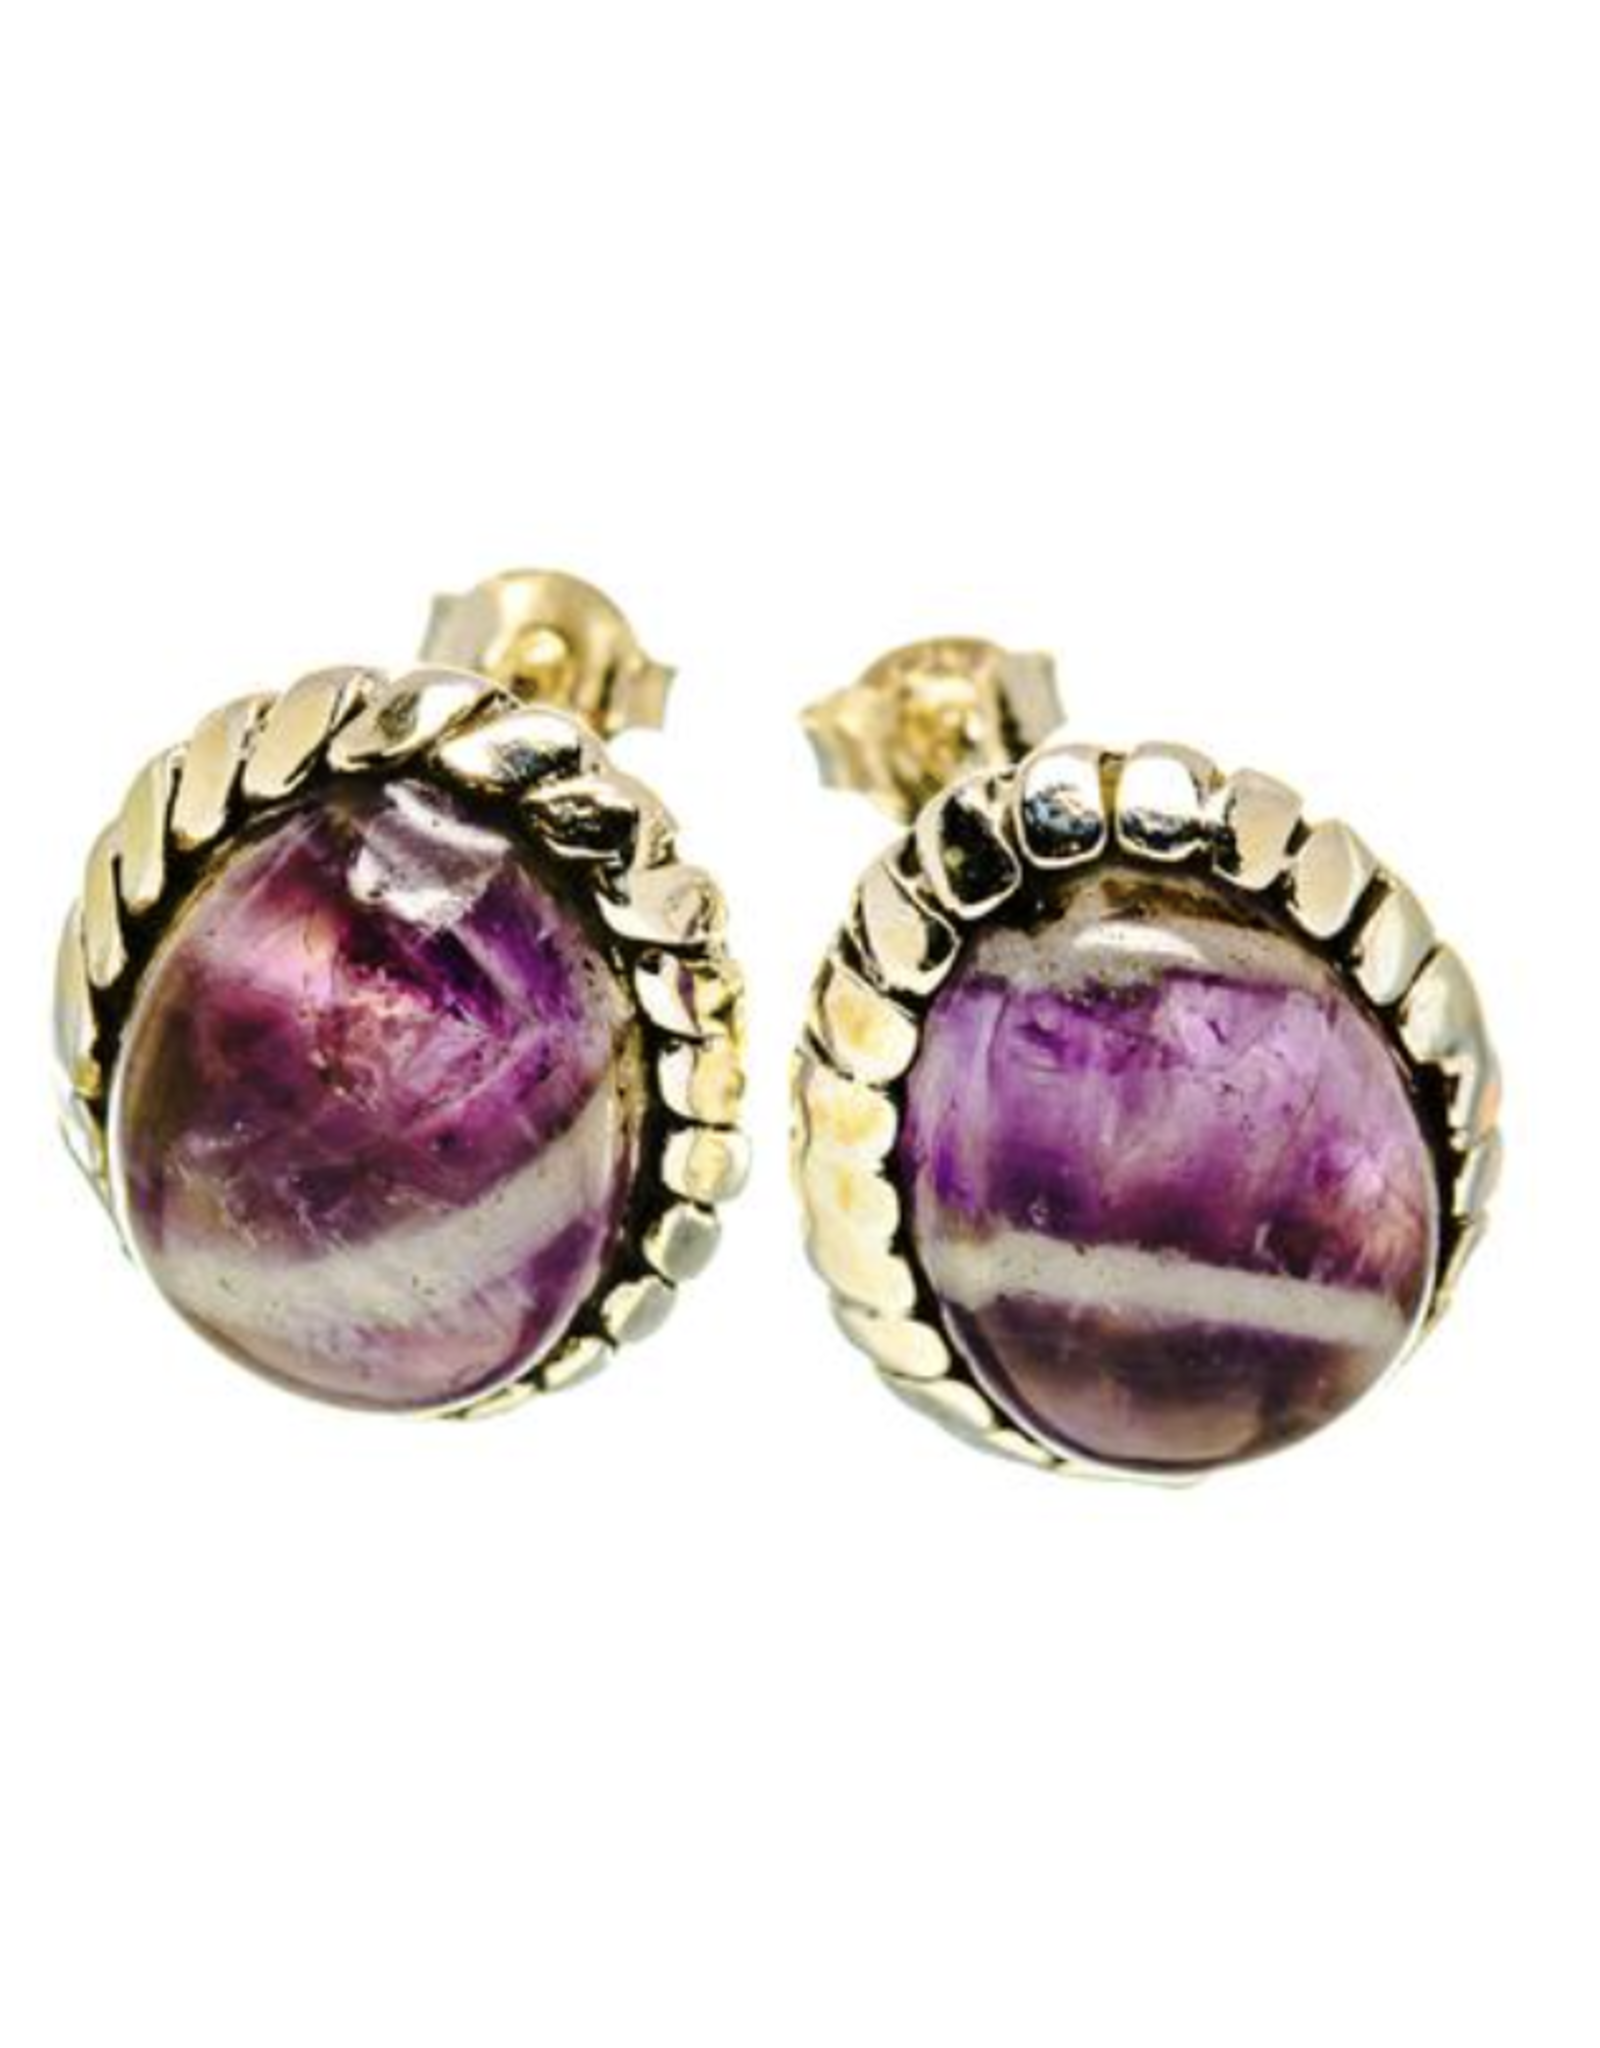 Chevron Amethyst Earrings - Stud